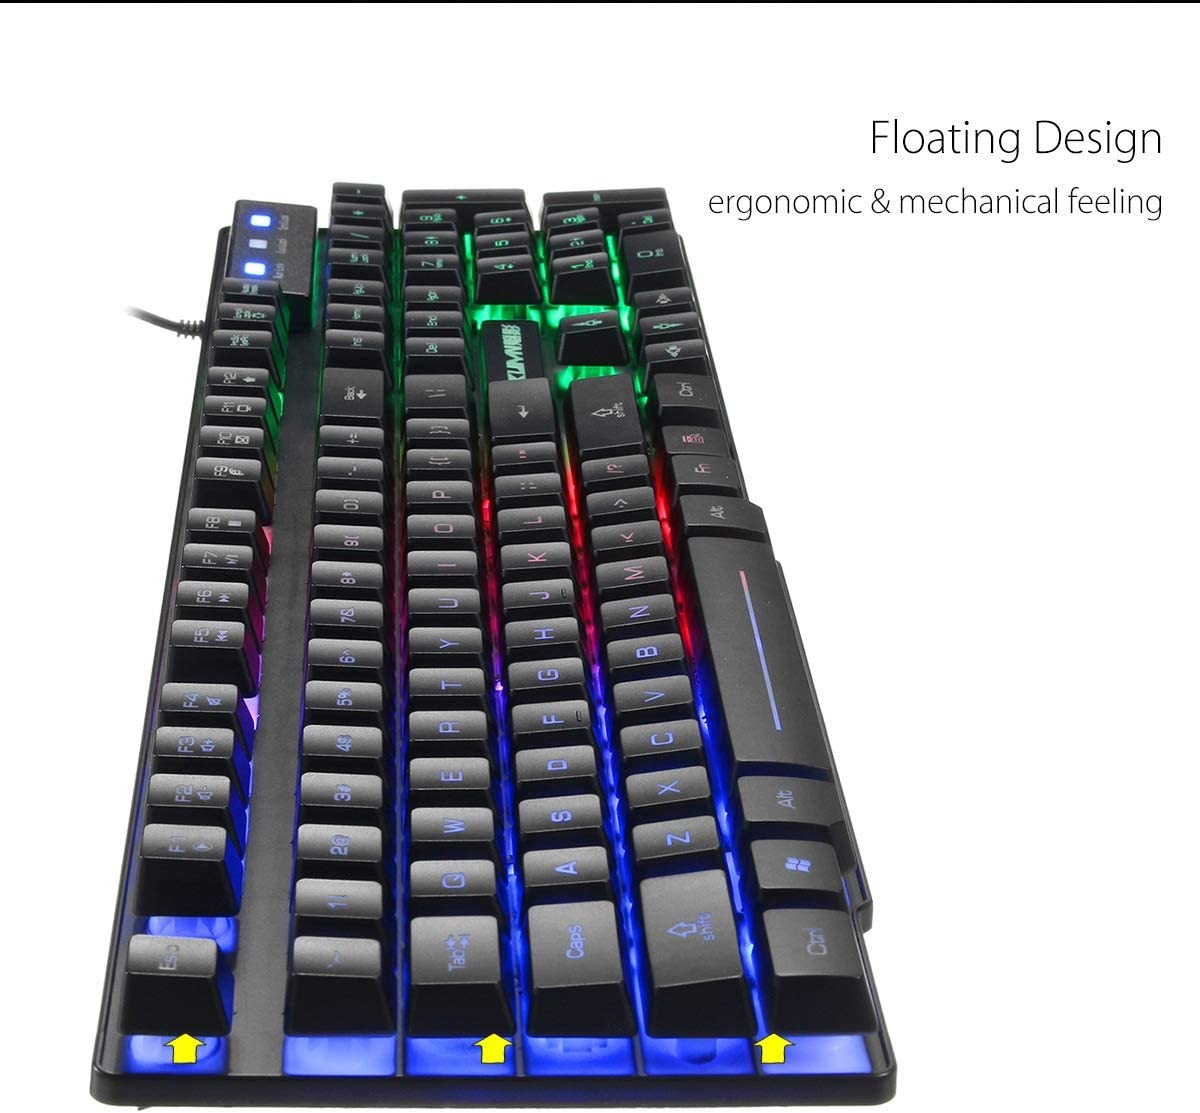 Black QINRUIKUANGSHAN Illuminated Keyboard and Mouse Set Computer Game Dedicated Keyboard Color : White Mechanical Feel White